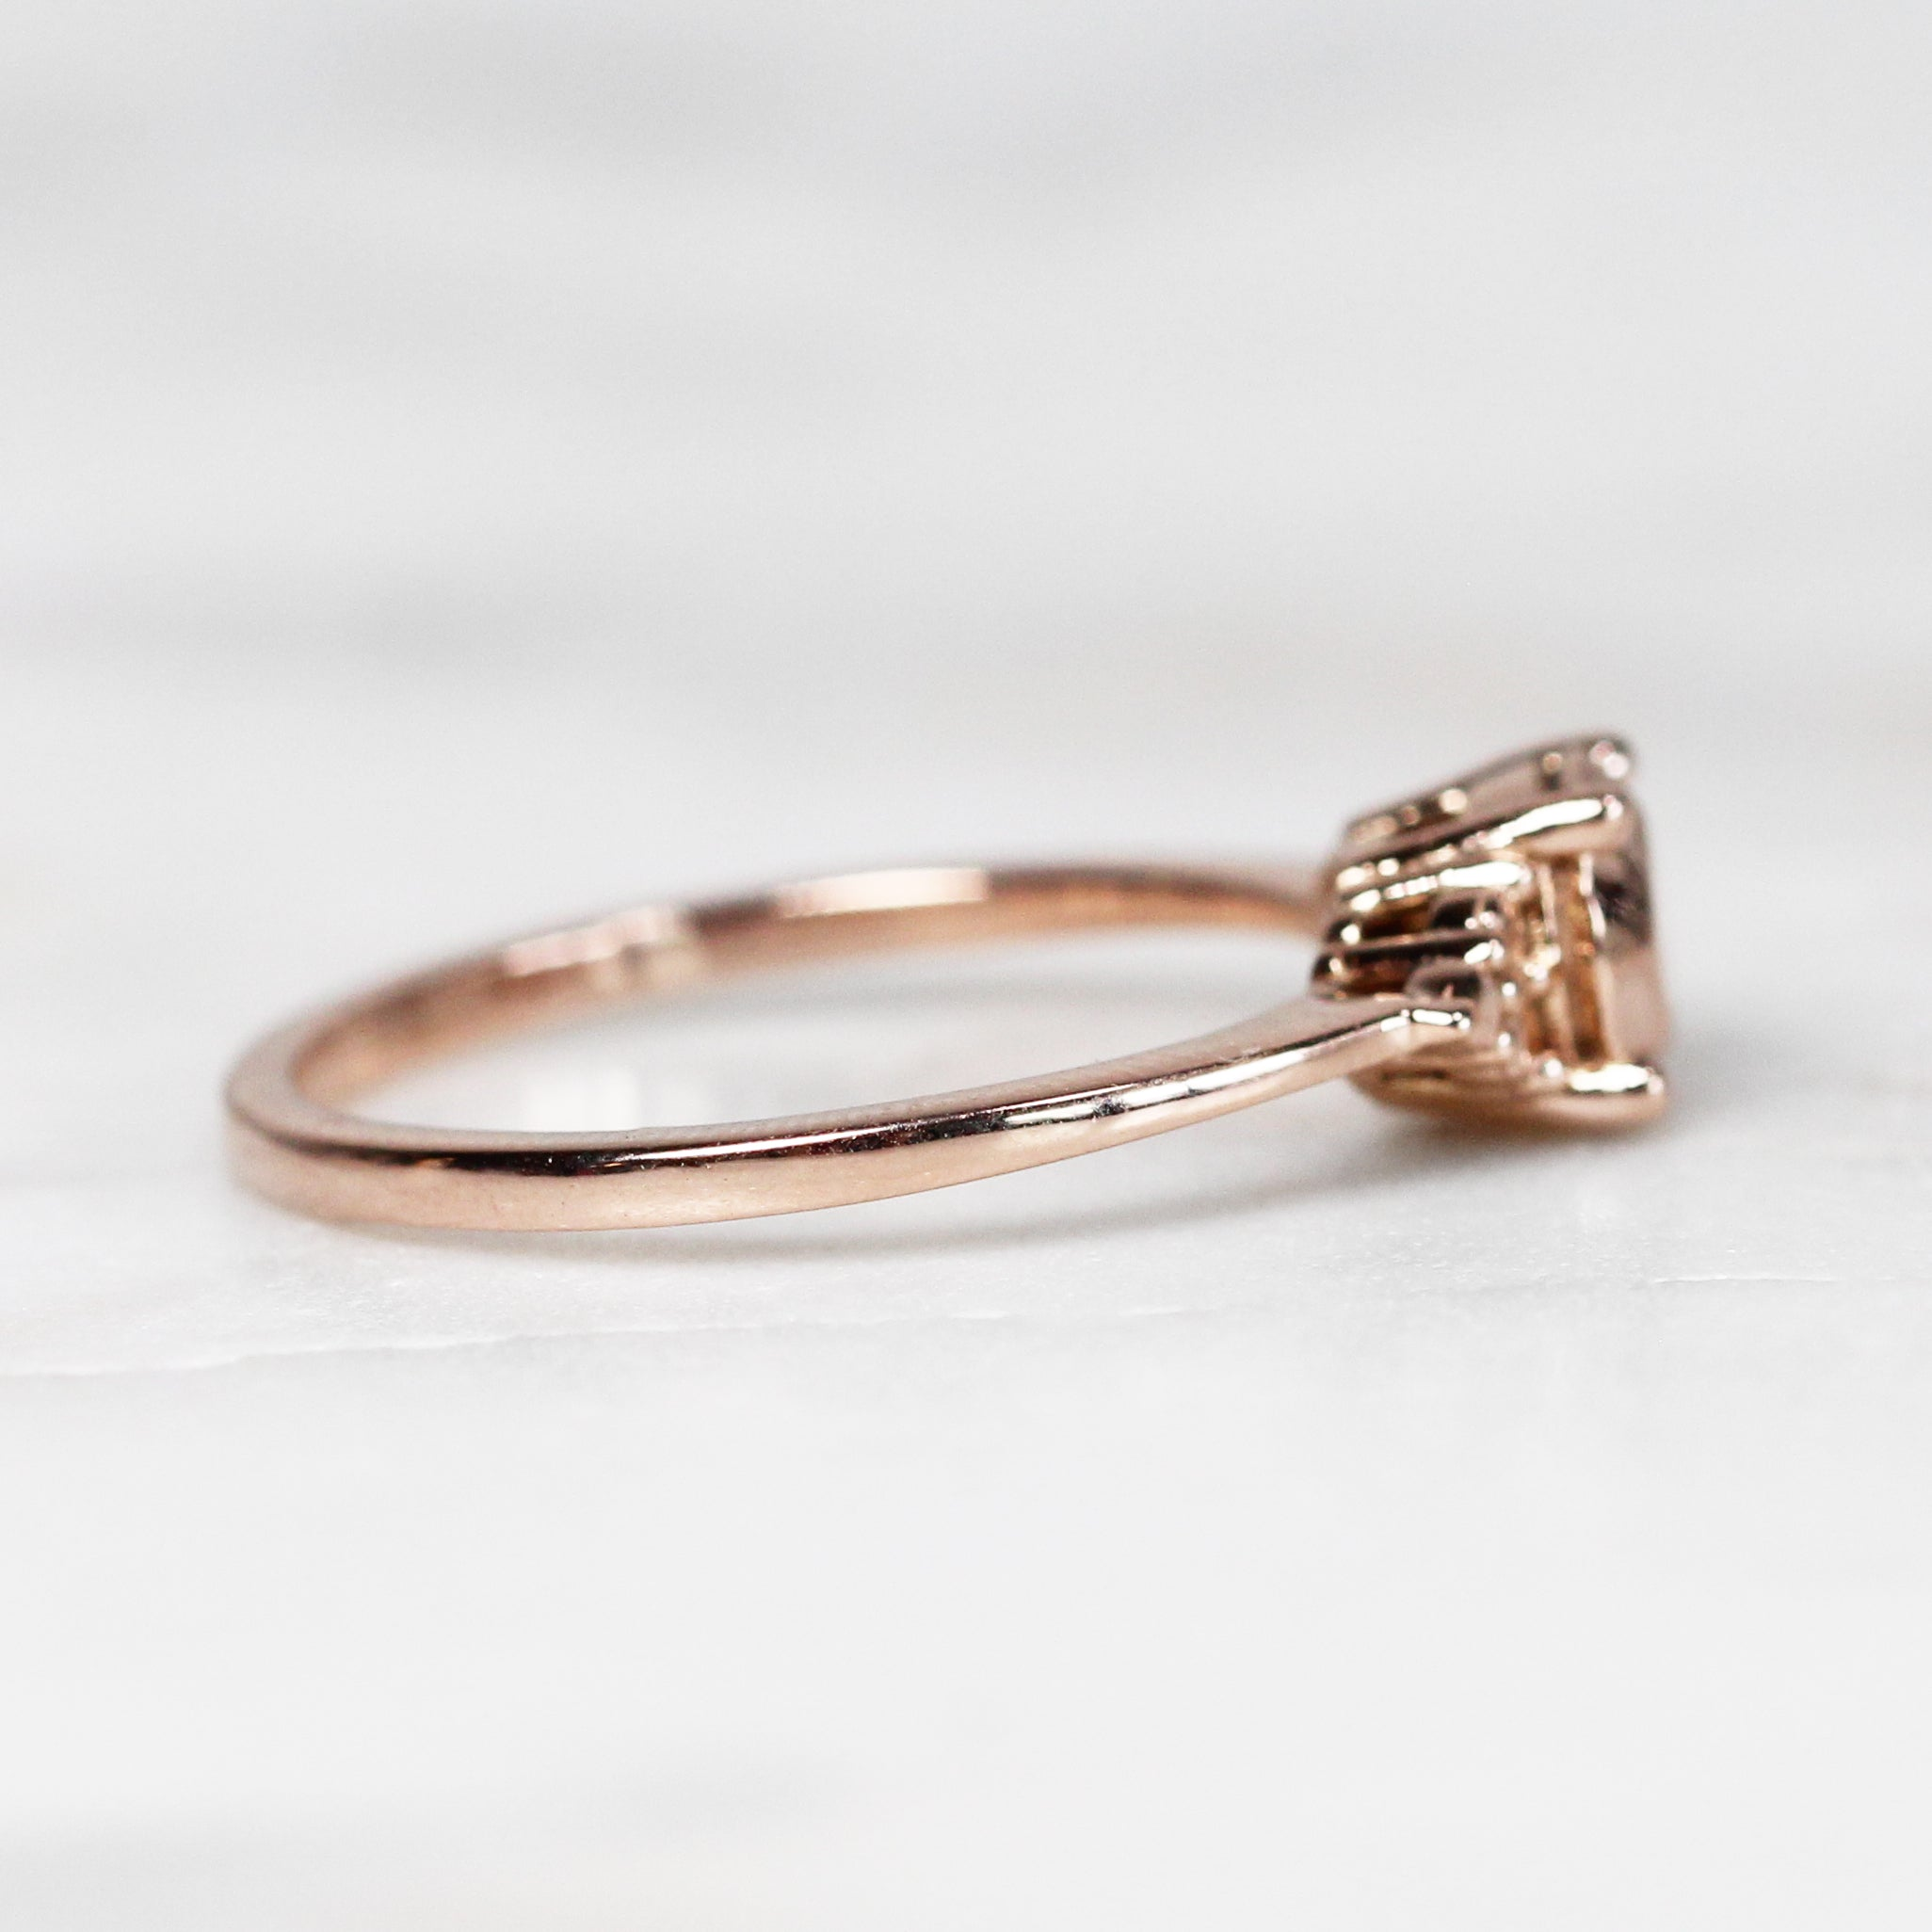 Solid Imogene Ring with 1 Carat Round Gold Stone in your choice of 14k gold - Salt & Pepper Celestial Diamond Engagement Rings and Wedding Bands  by Midwinter Co.